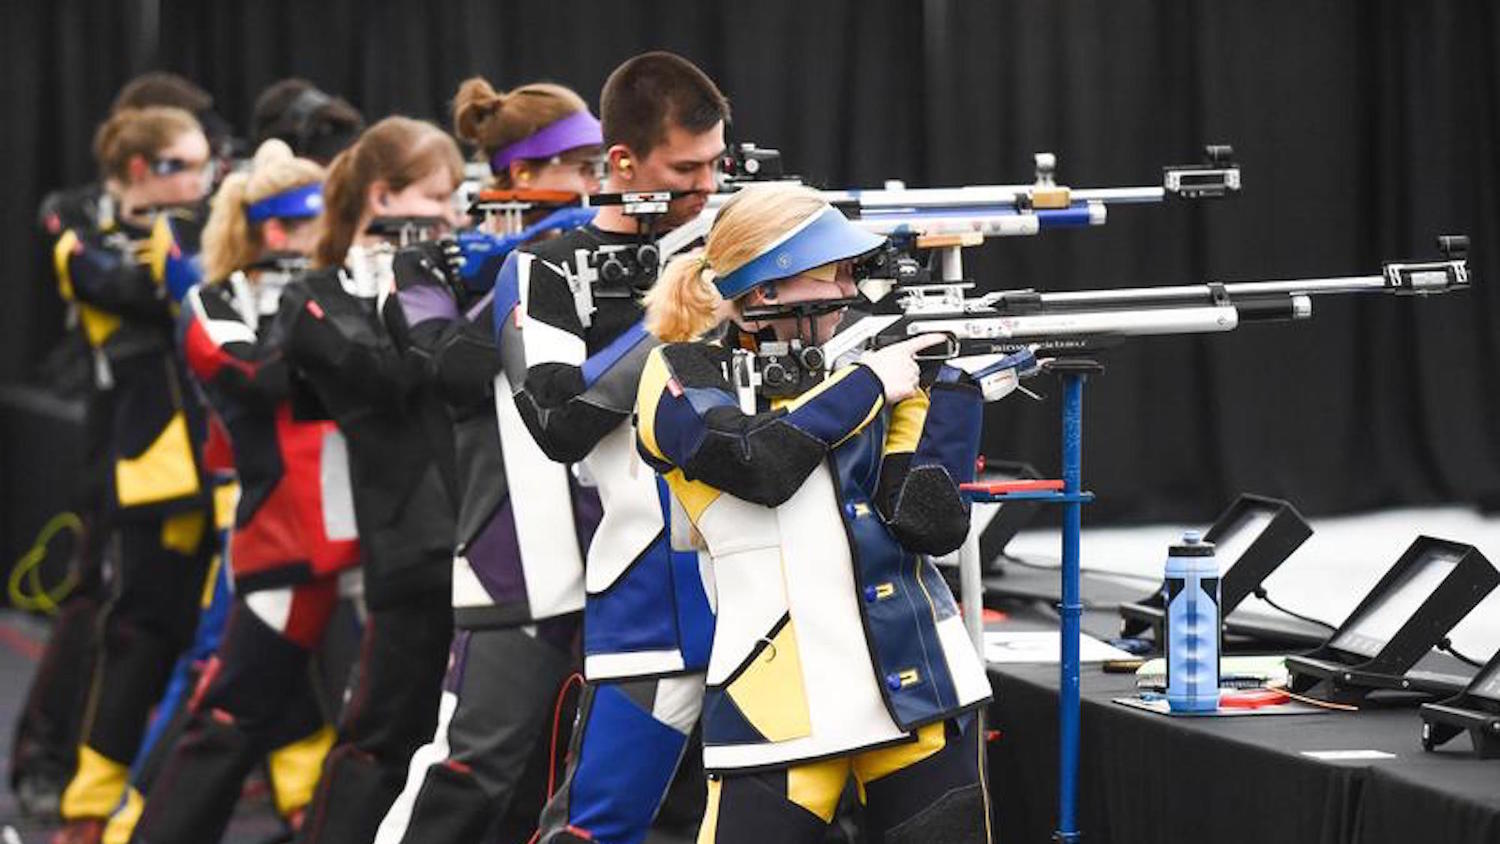 A (Very) Quick Overview of NCAA Rifle Competition Rules